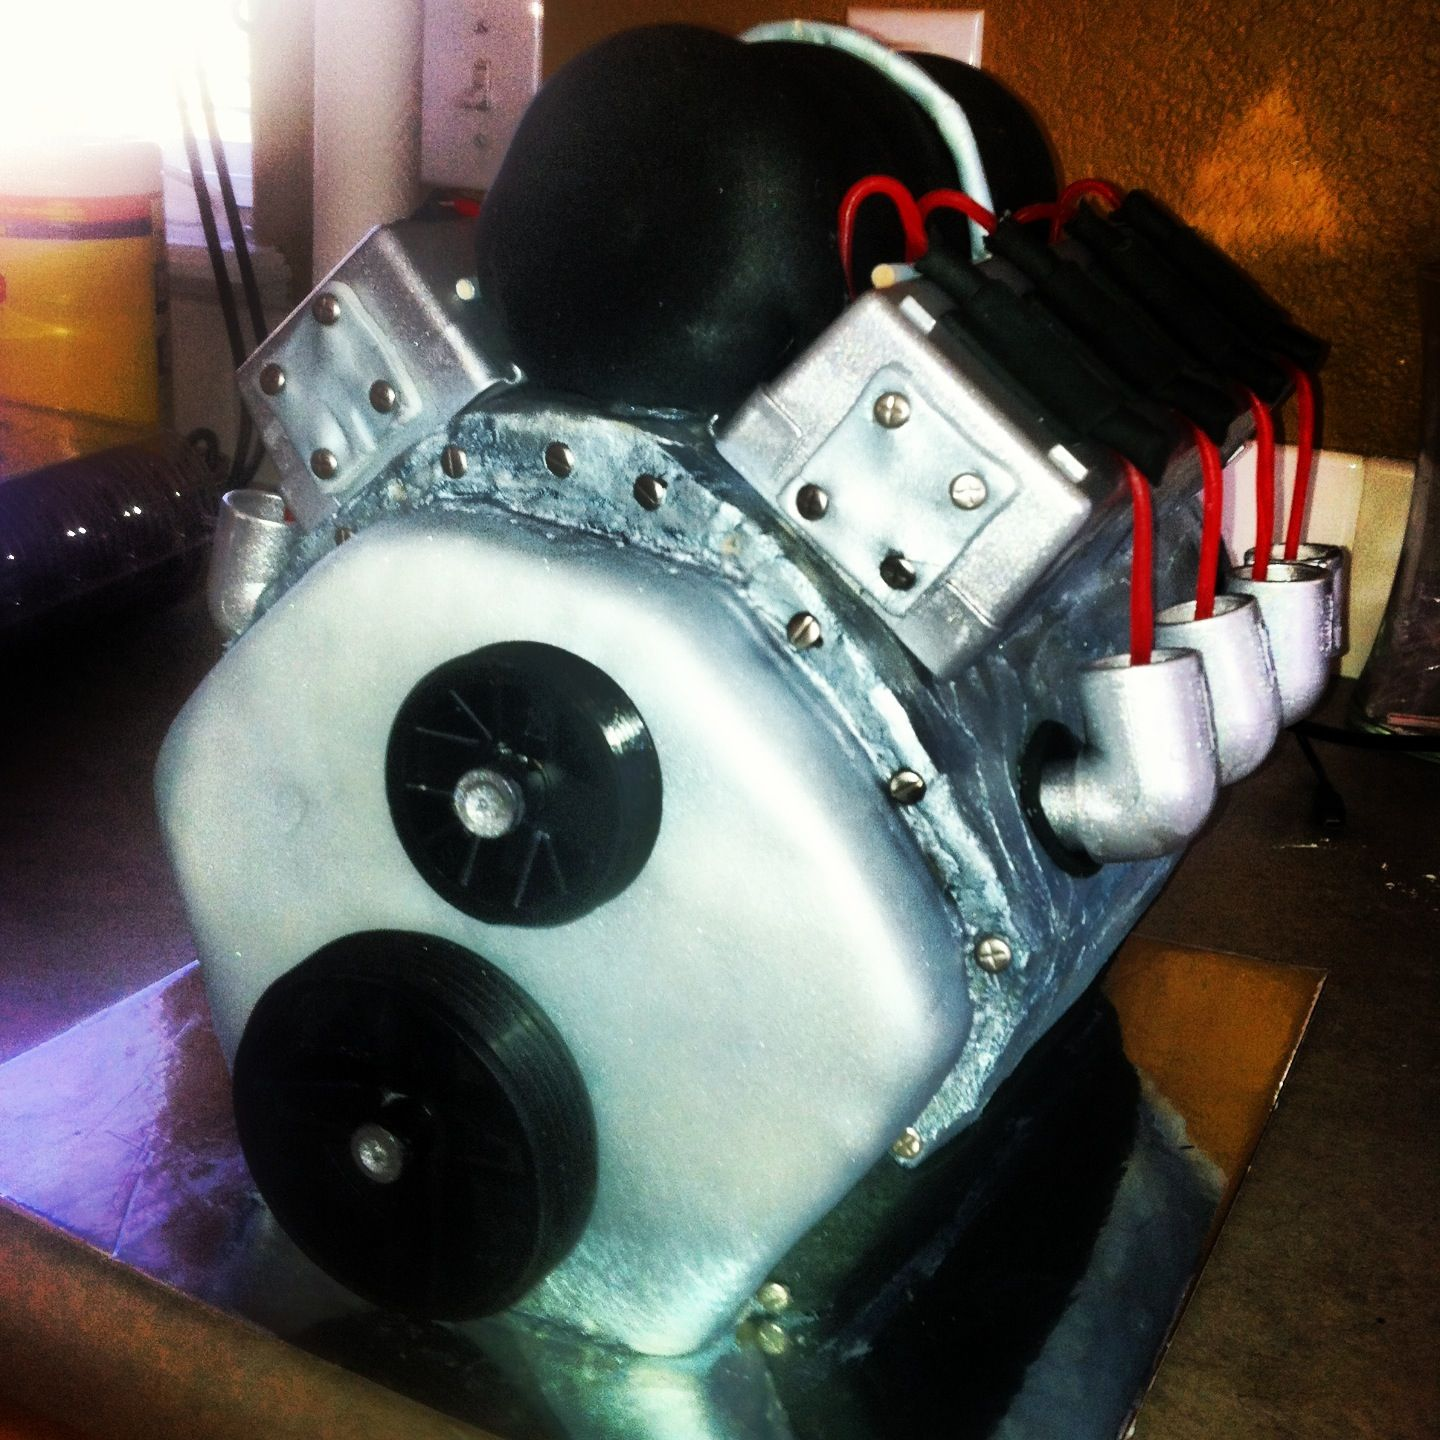 Motor cake engine cake My own cakes Pinterest Motor cake